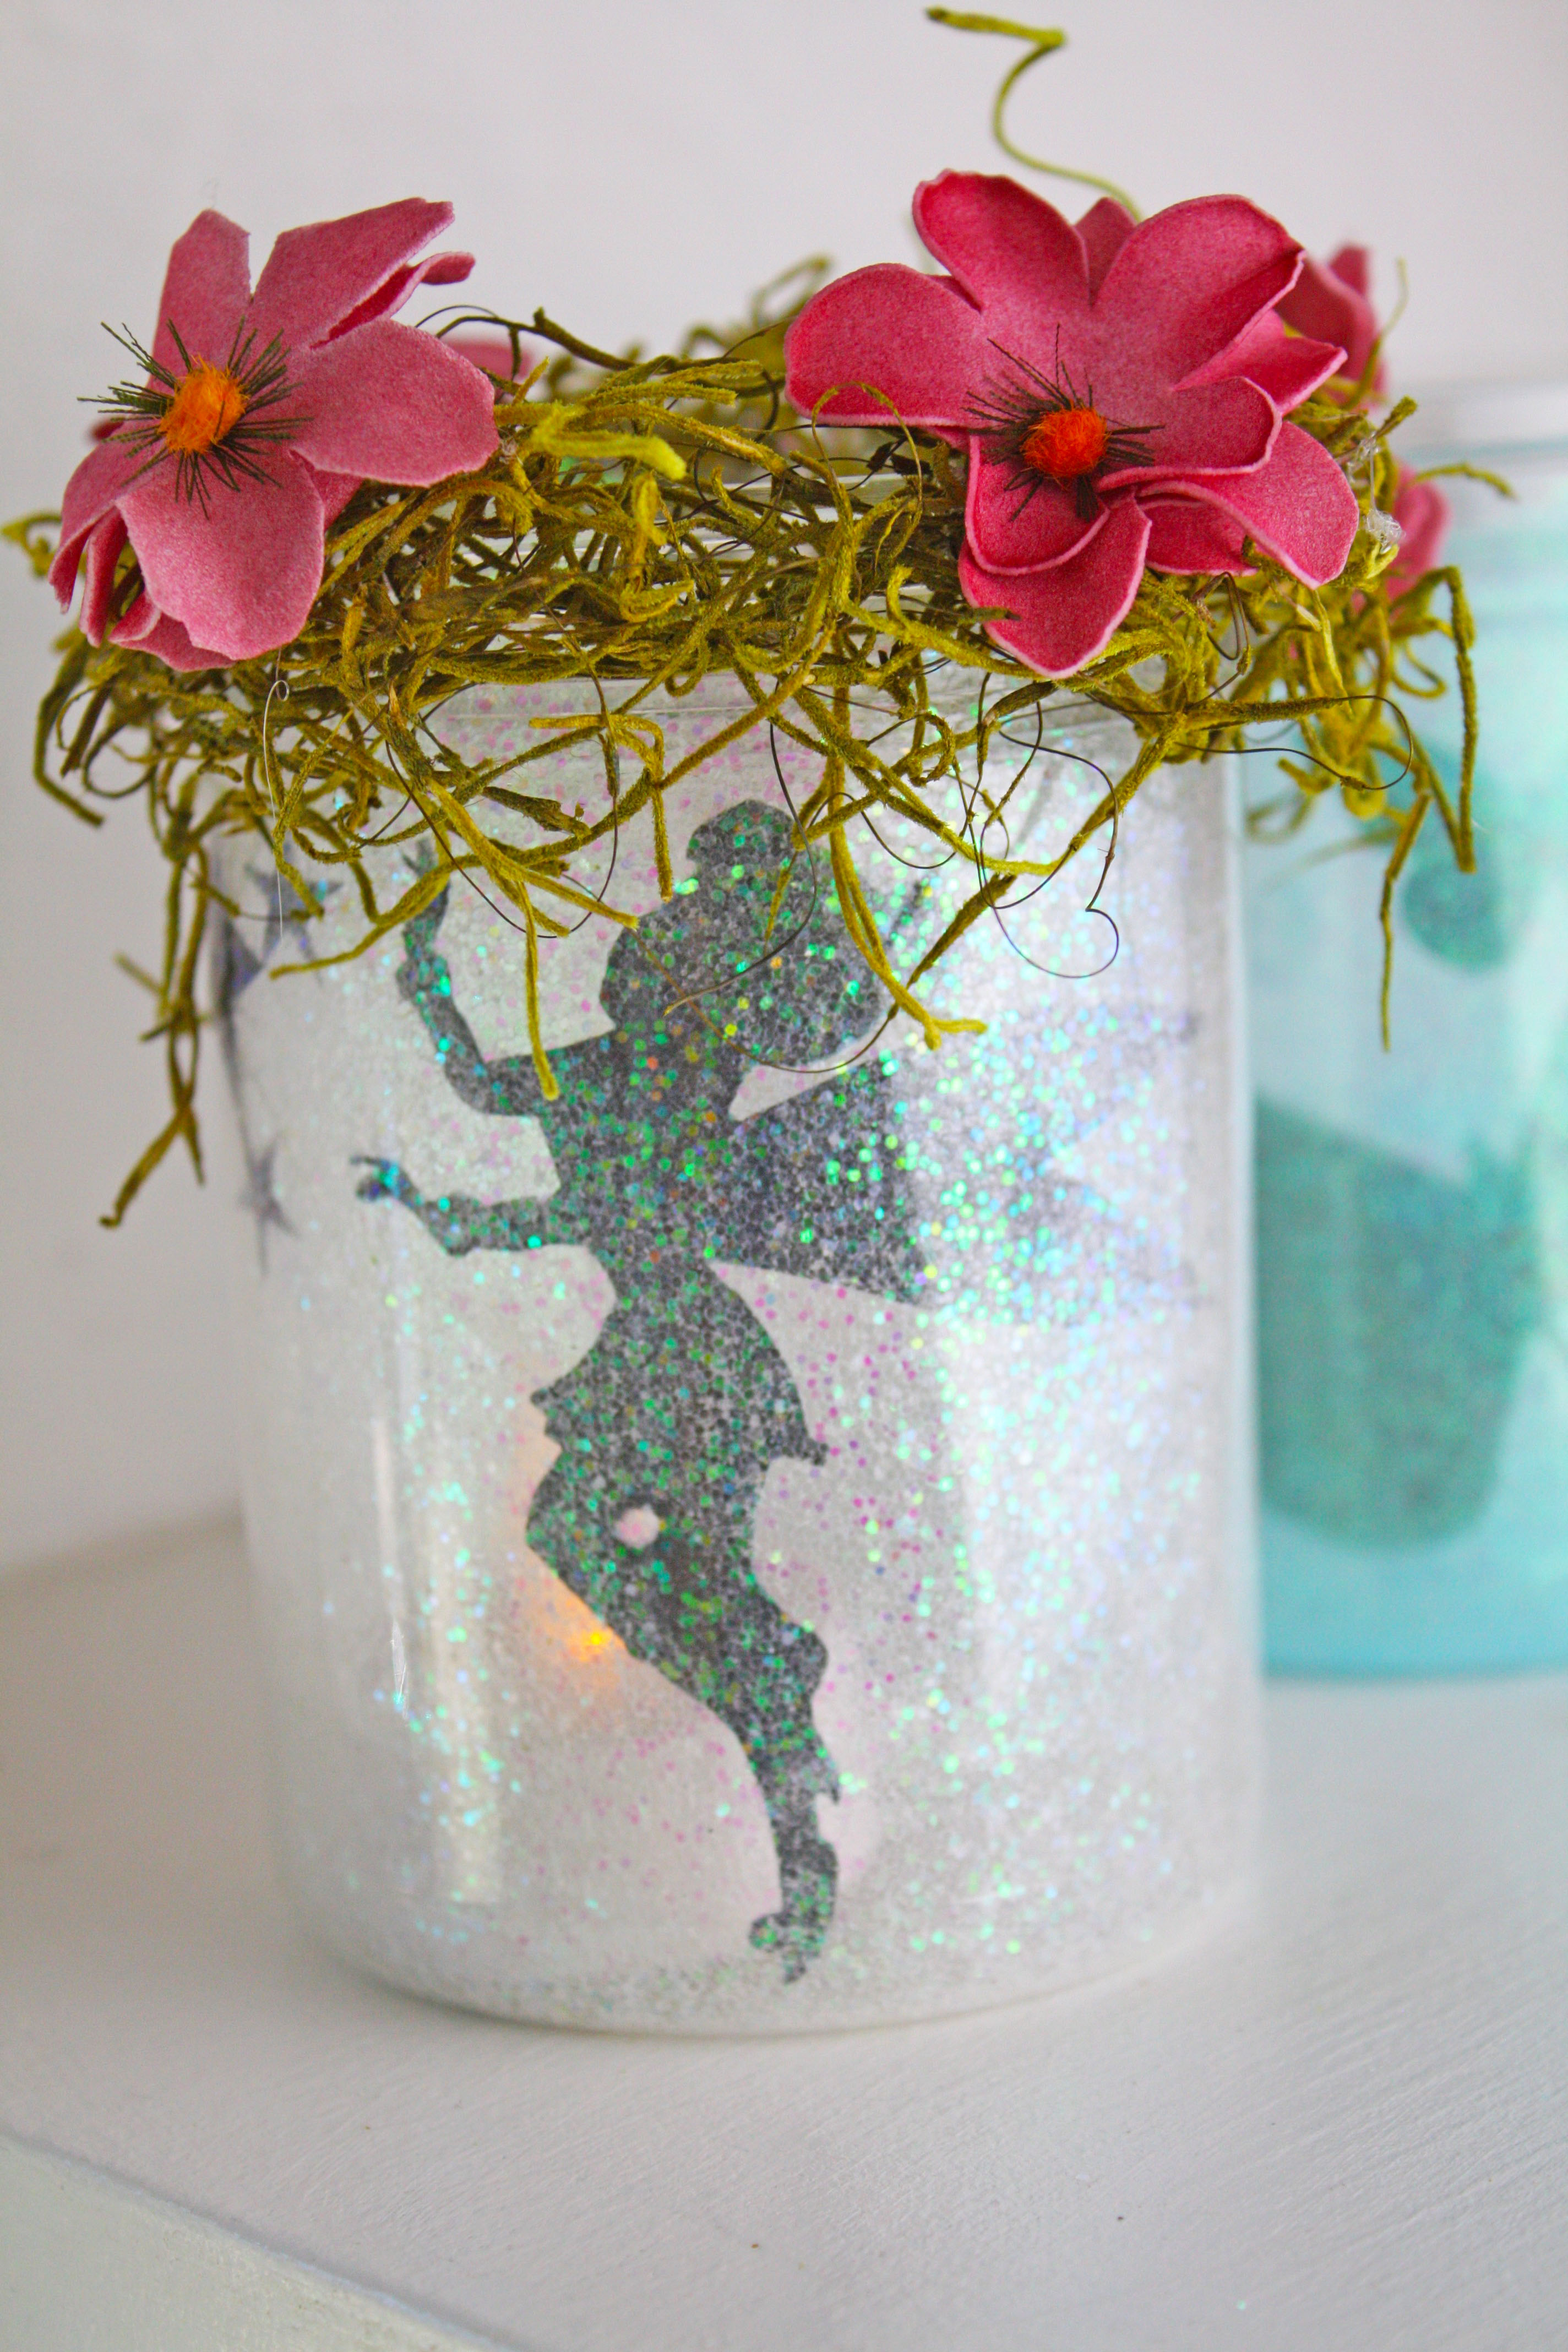 how to catch a fairy in a jar